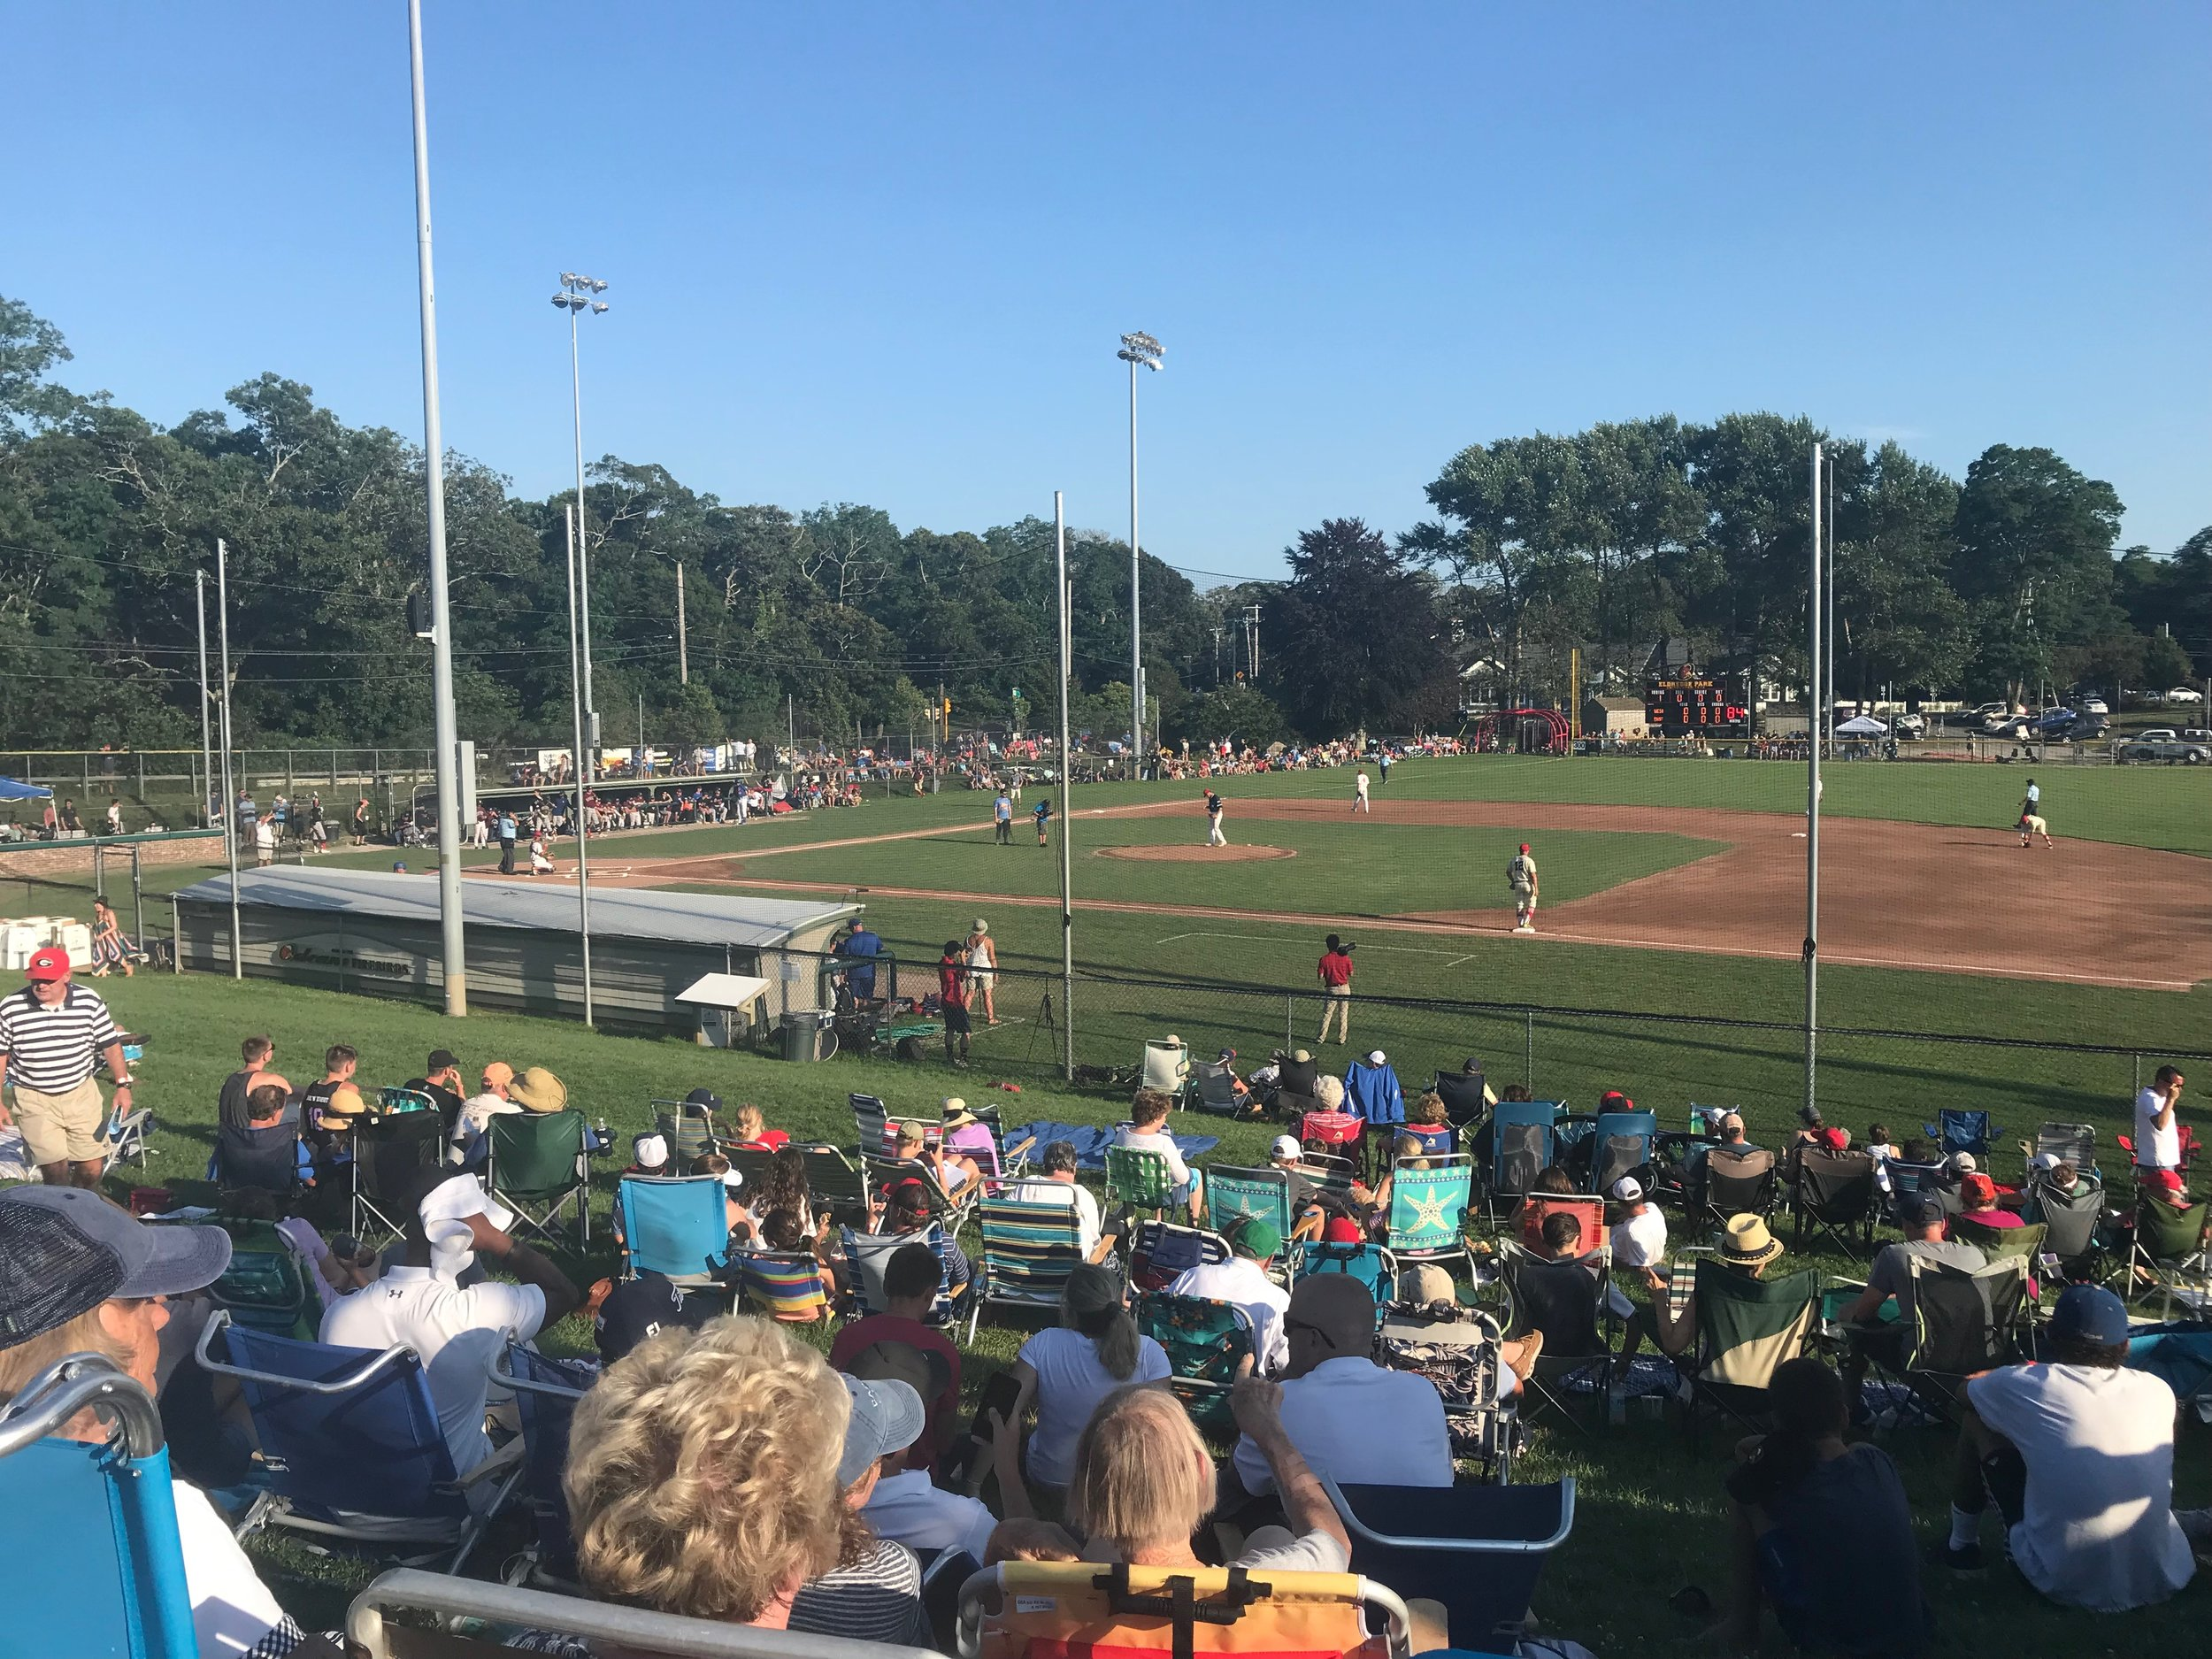 Fans watch the 2019 Cape League All Star Game at Eldredge Park in Orleans.  Photo by Harrison Meyers